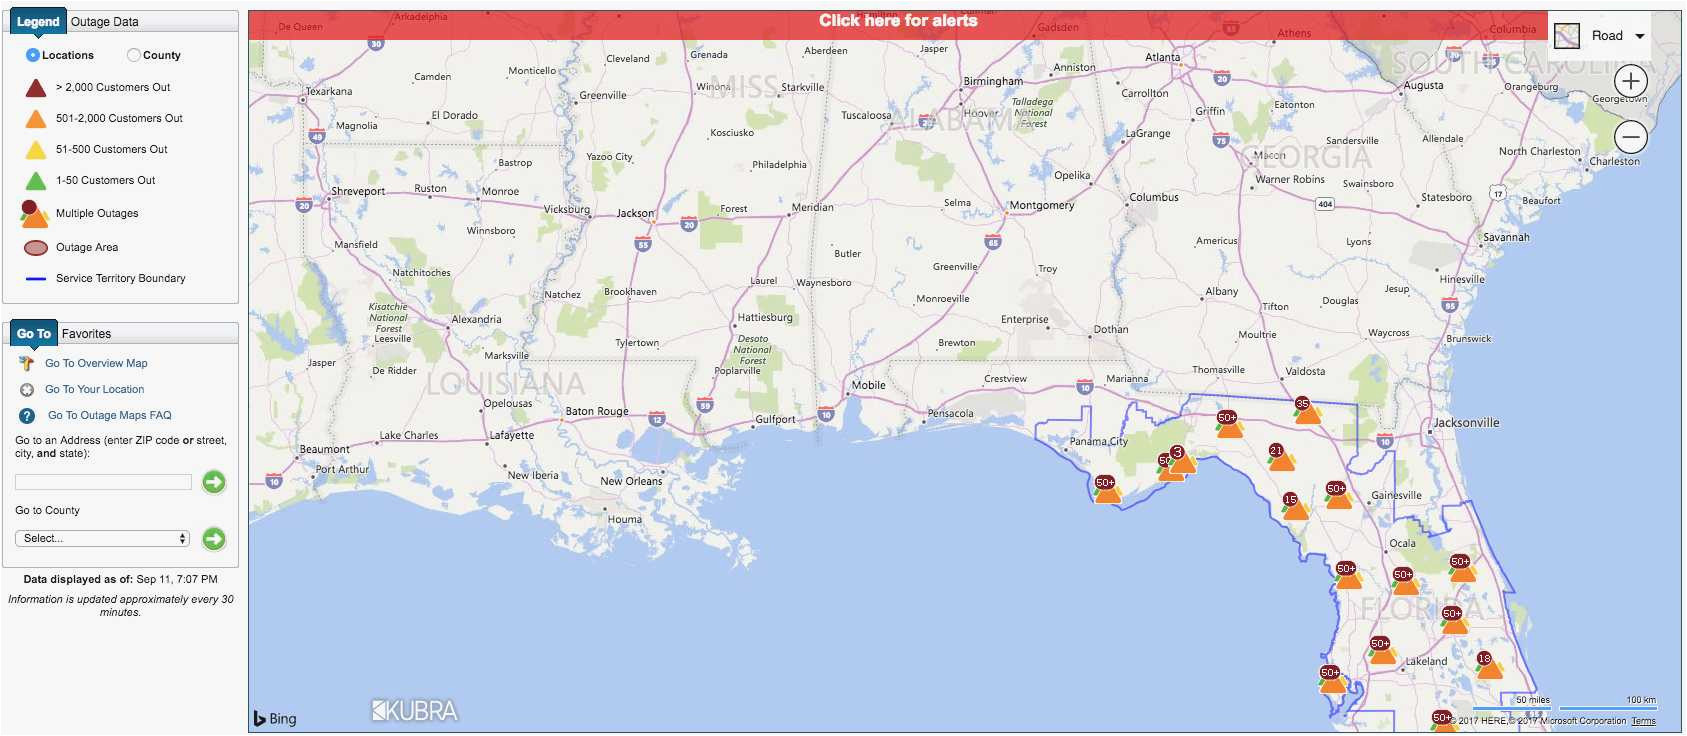 Duke Energy Outage Map north Carolina First Energy Outage Map Best on